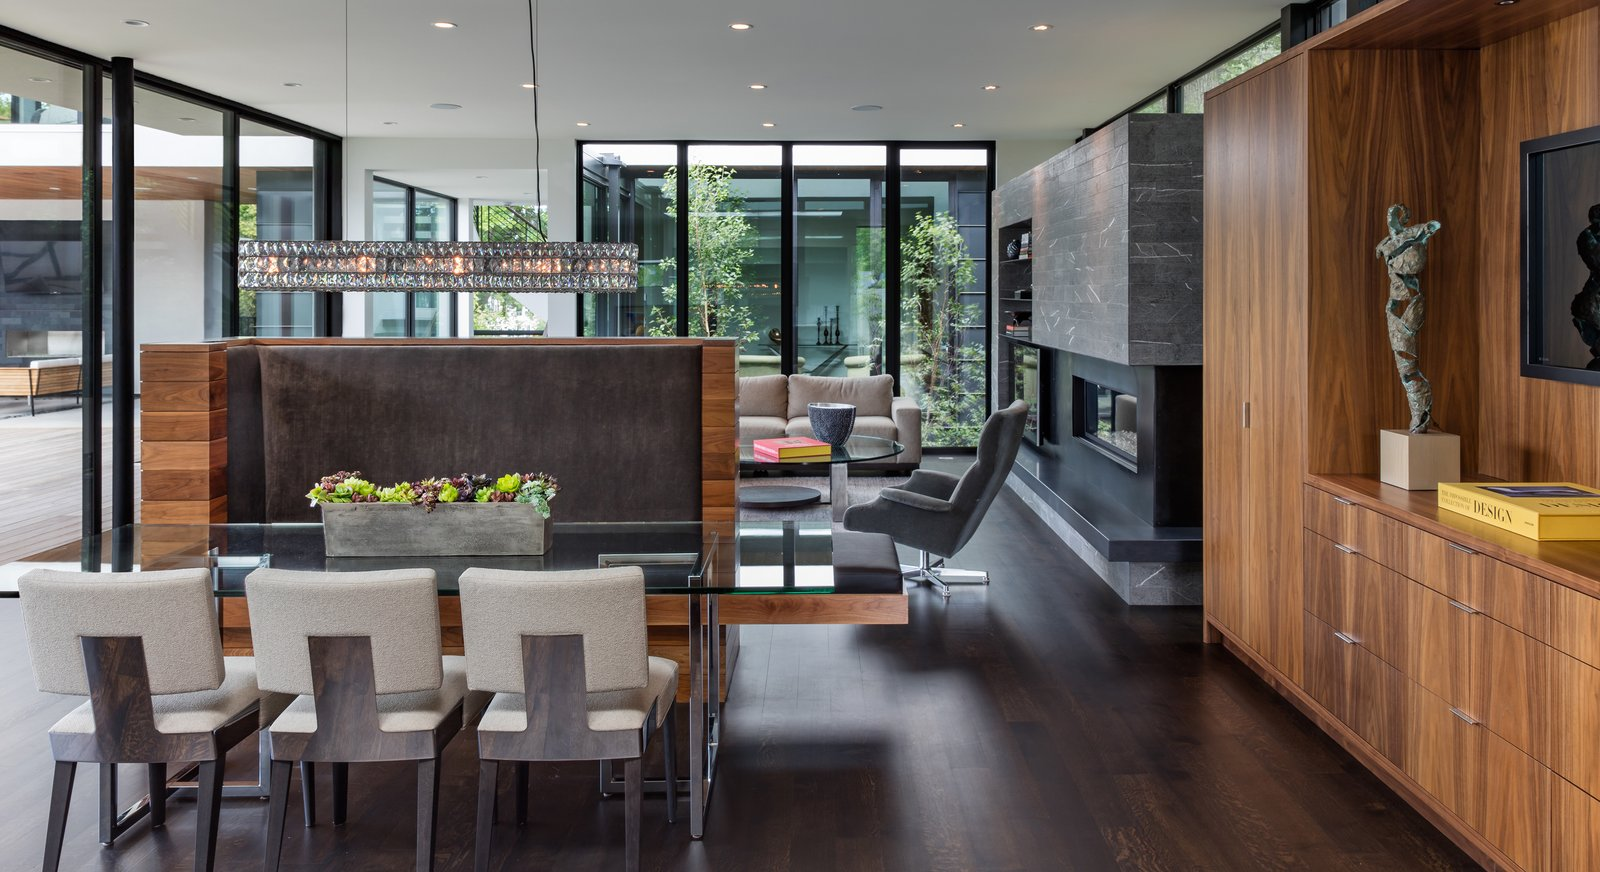 Tagged: Bench, Table, Chair, Shelves, Storage, Ceiling Lighting, Pendant Lighting, Accent Lighting, Sofa, Ribbon Fireplace, Dark Hardwood Floor, Gas Burning Fireplace, Outdoor, Corner Fireplace, and Garden.  Calhoun Pavilions Residence by Peterssen/Keller Architecture